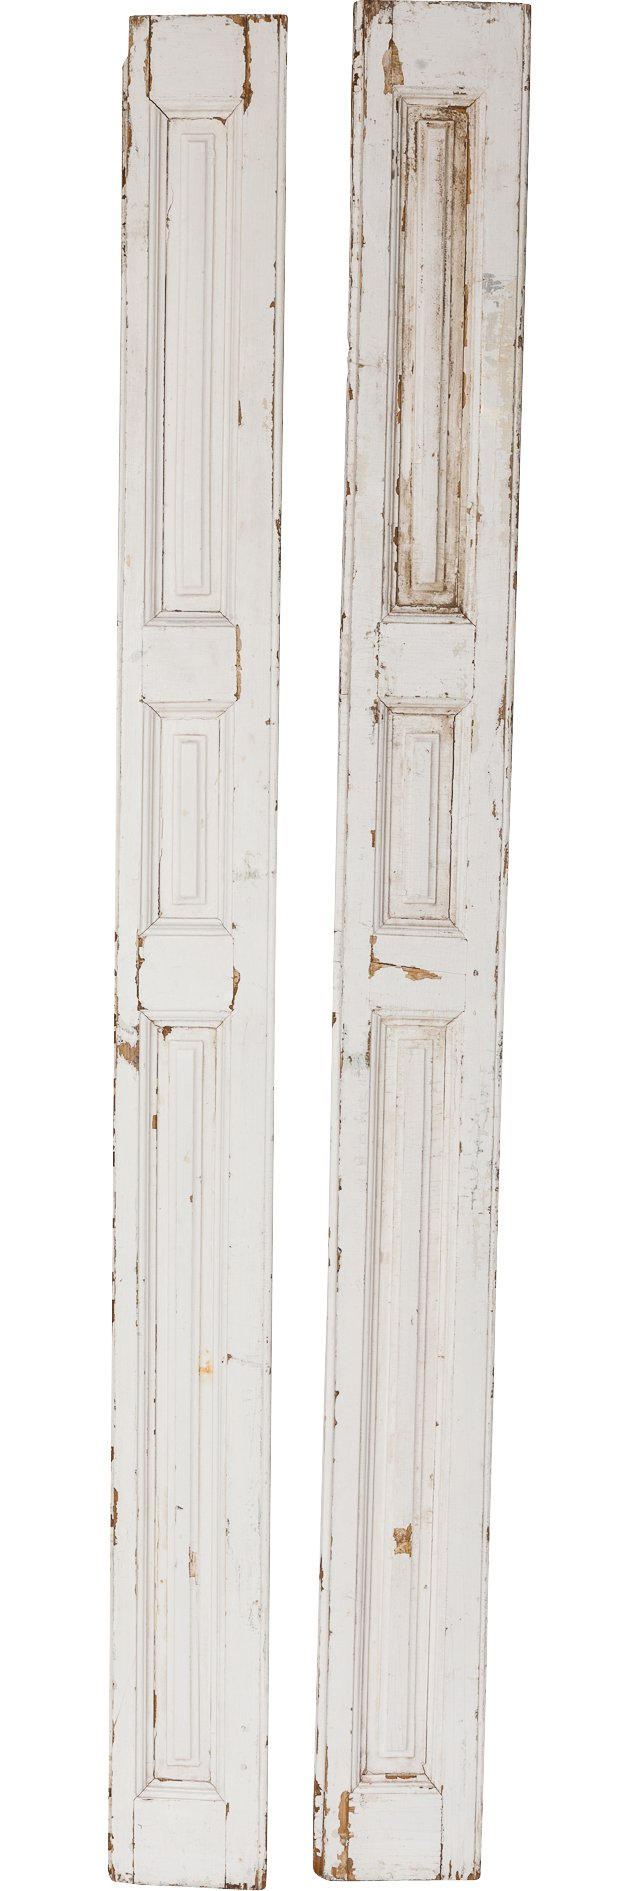 Vintage White Shutters, Pair